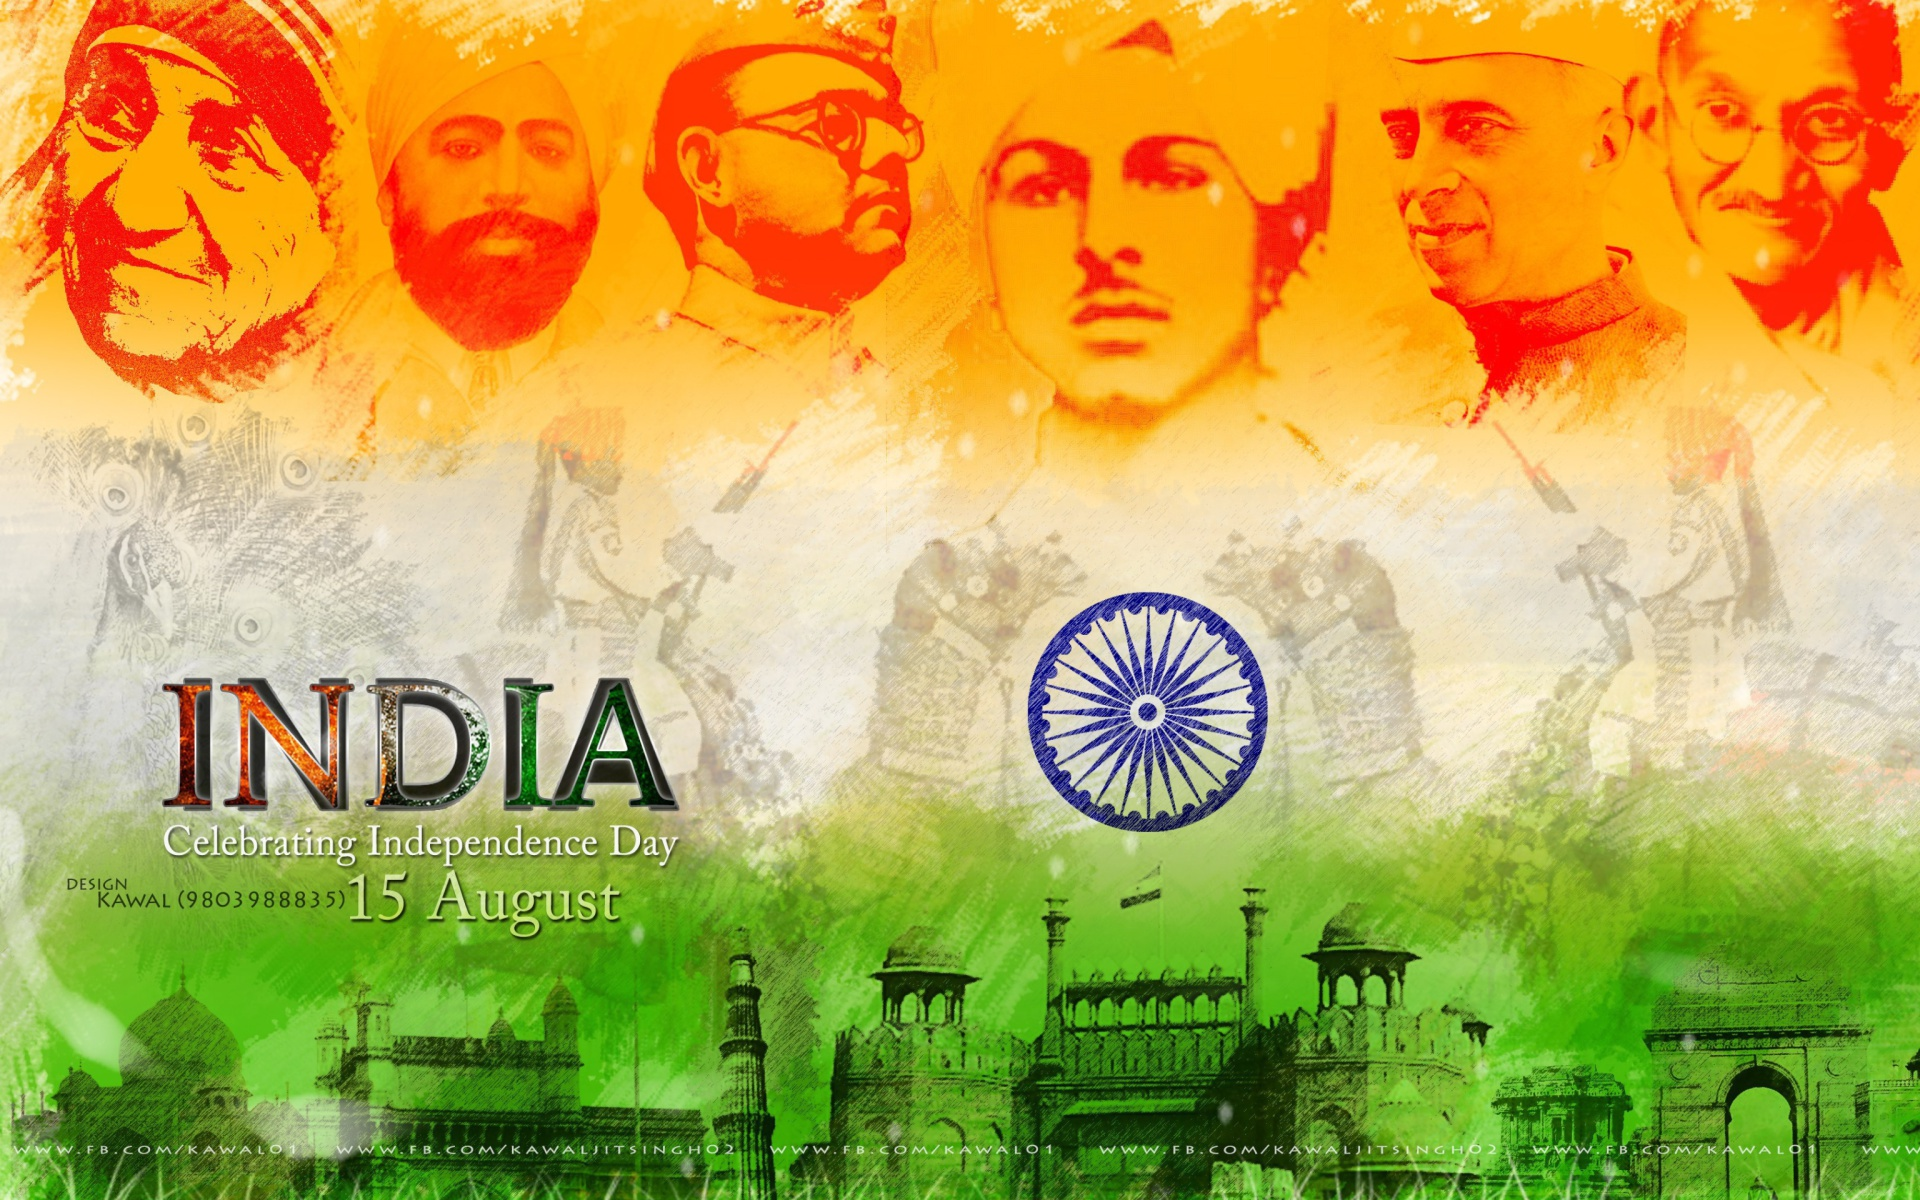 15 August Independence Day Hd Wallpaper: Independence Day India 15 August Wallpaper For Widescreen